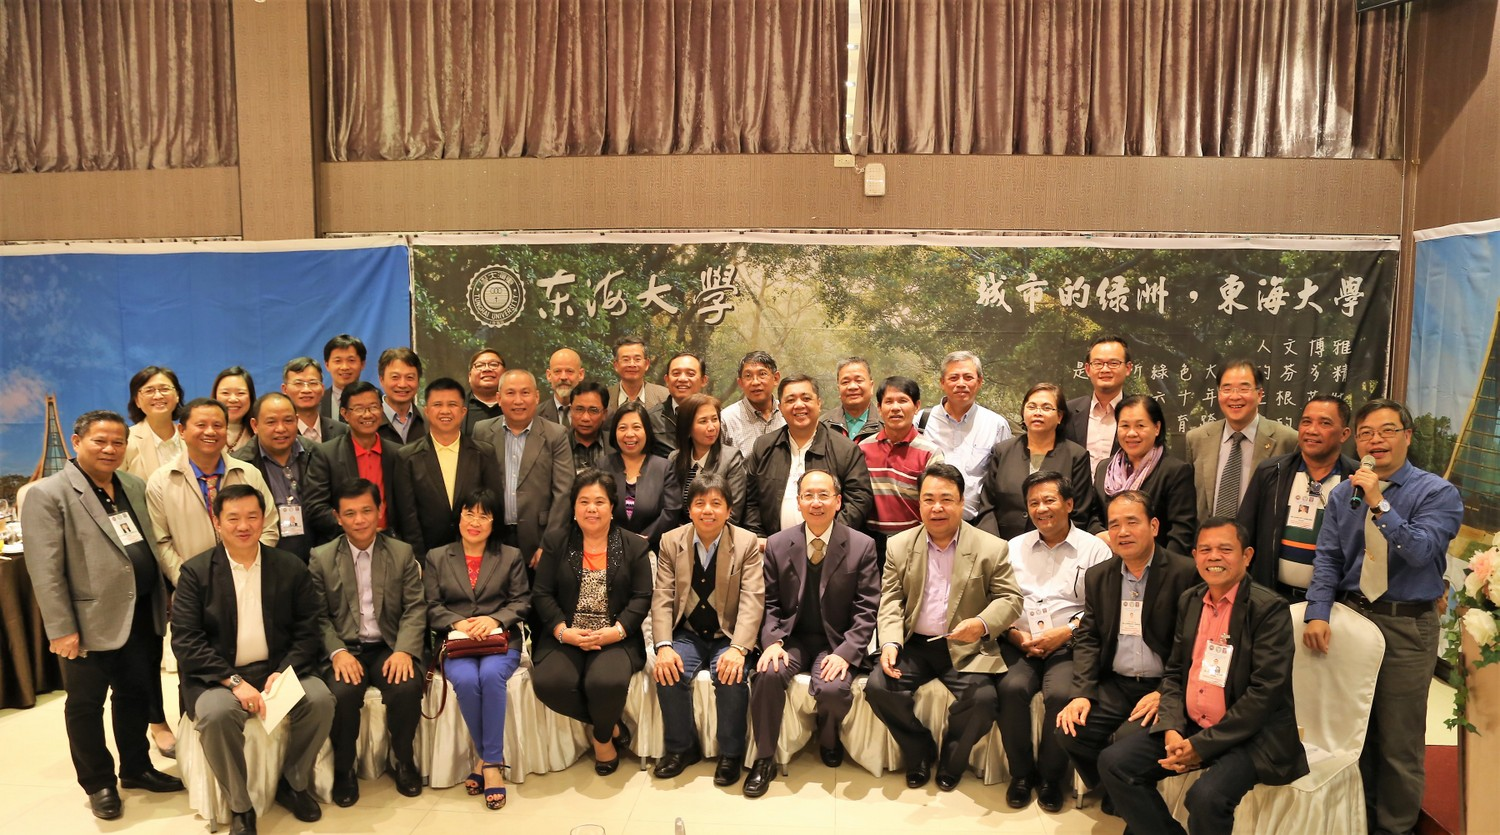 Group picture of honorable guests and hosts-